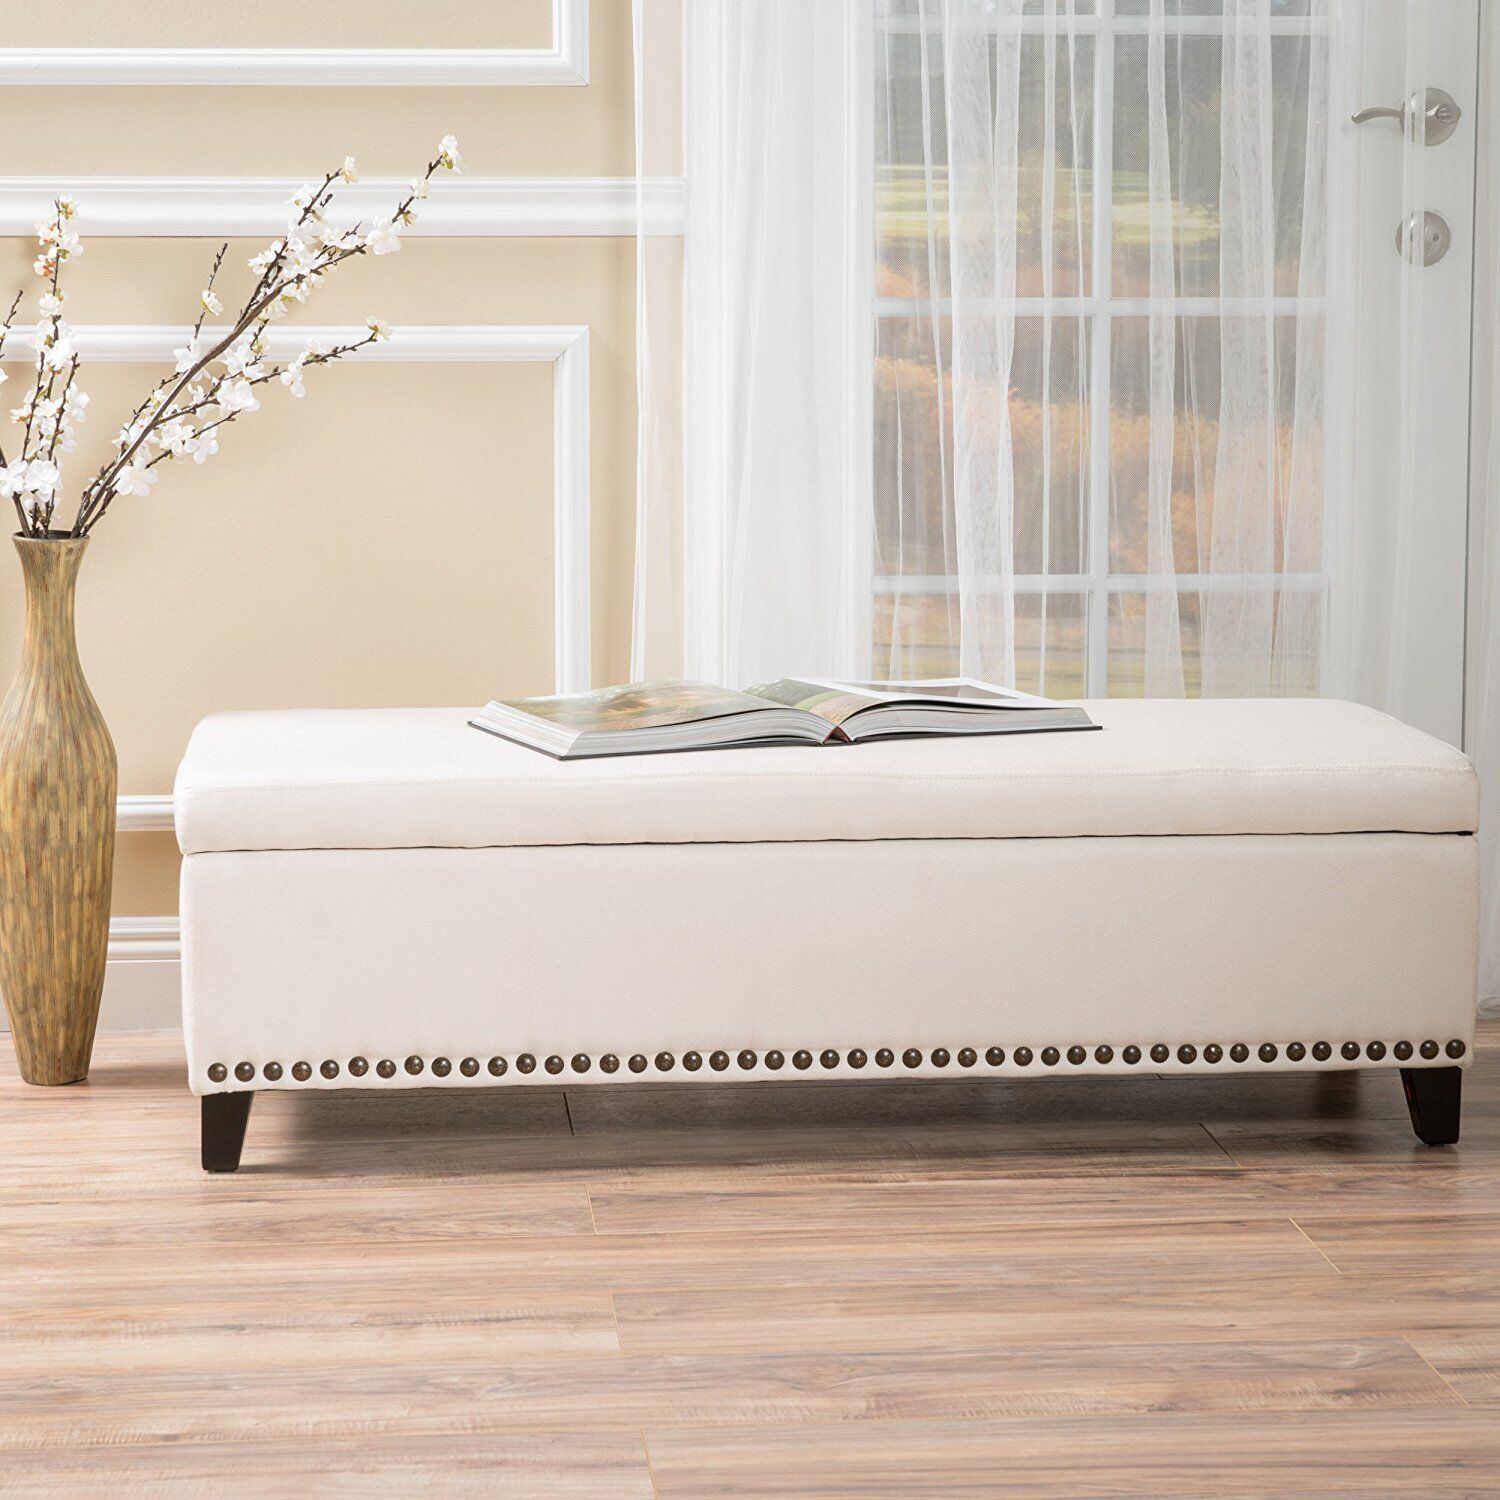 Foot Of The Bed bed bench end storage cushion foot king size upholstered bedroom hallway  foyer